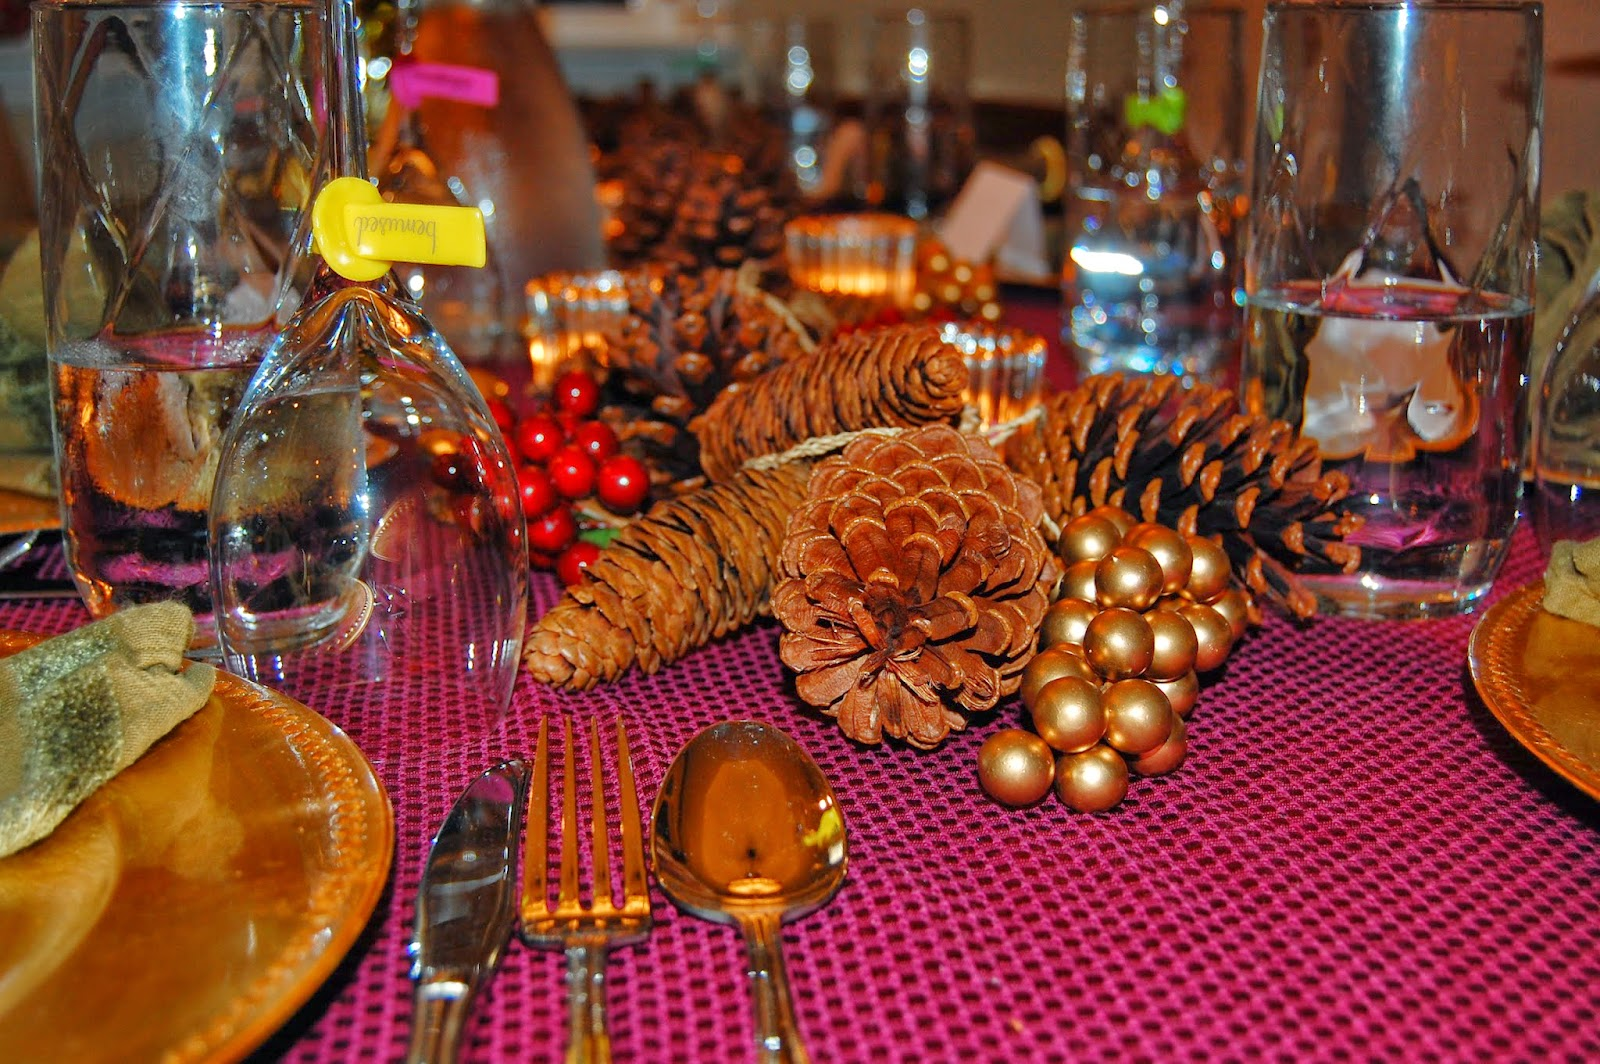 CAD INTERIORS Thanksgiving Christmas table arrangement setting budget decorating design tips pine cones berries candles picks